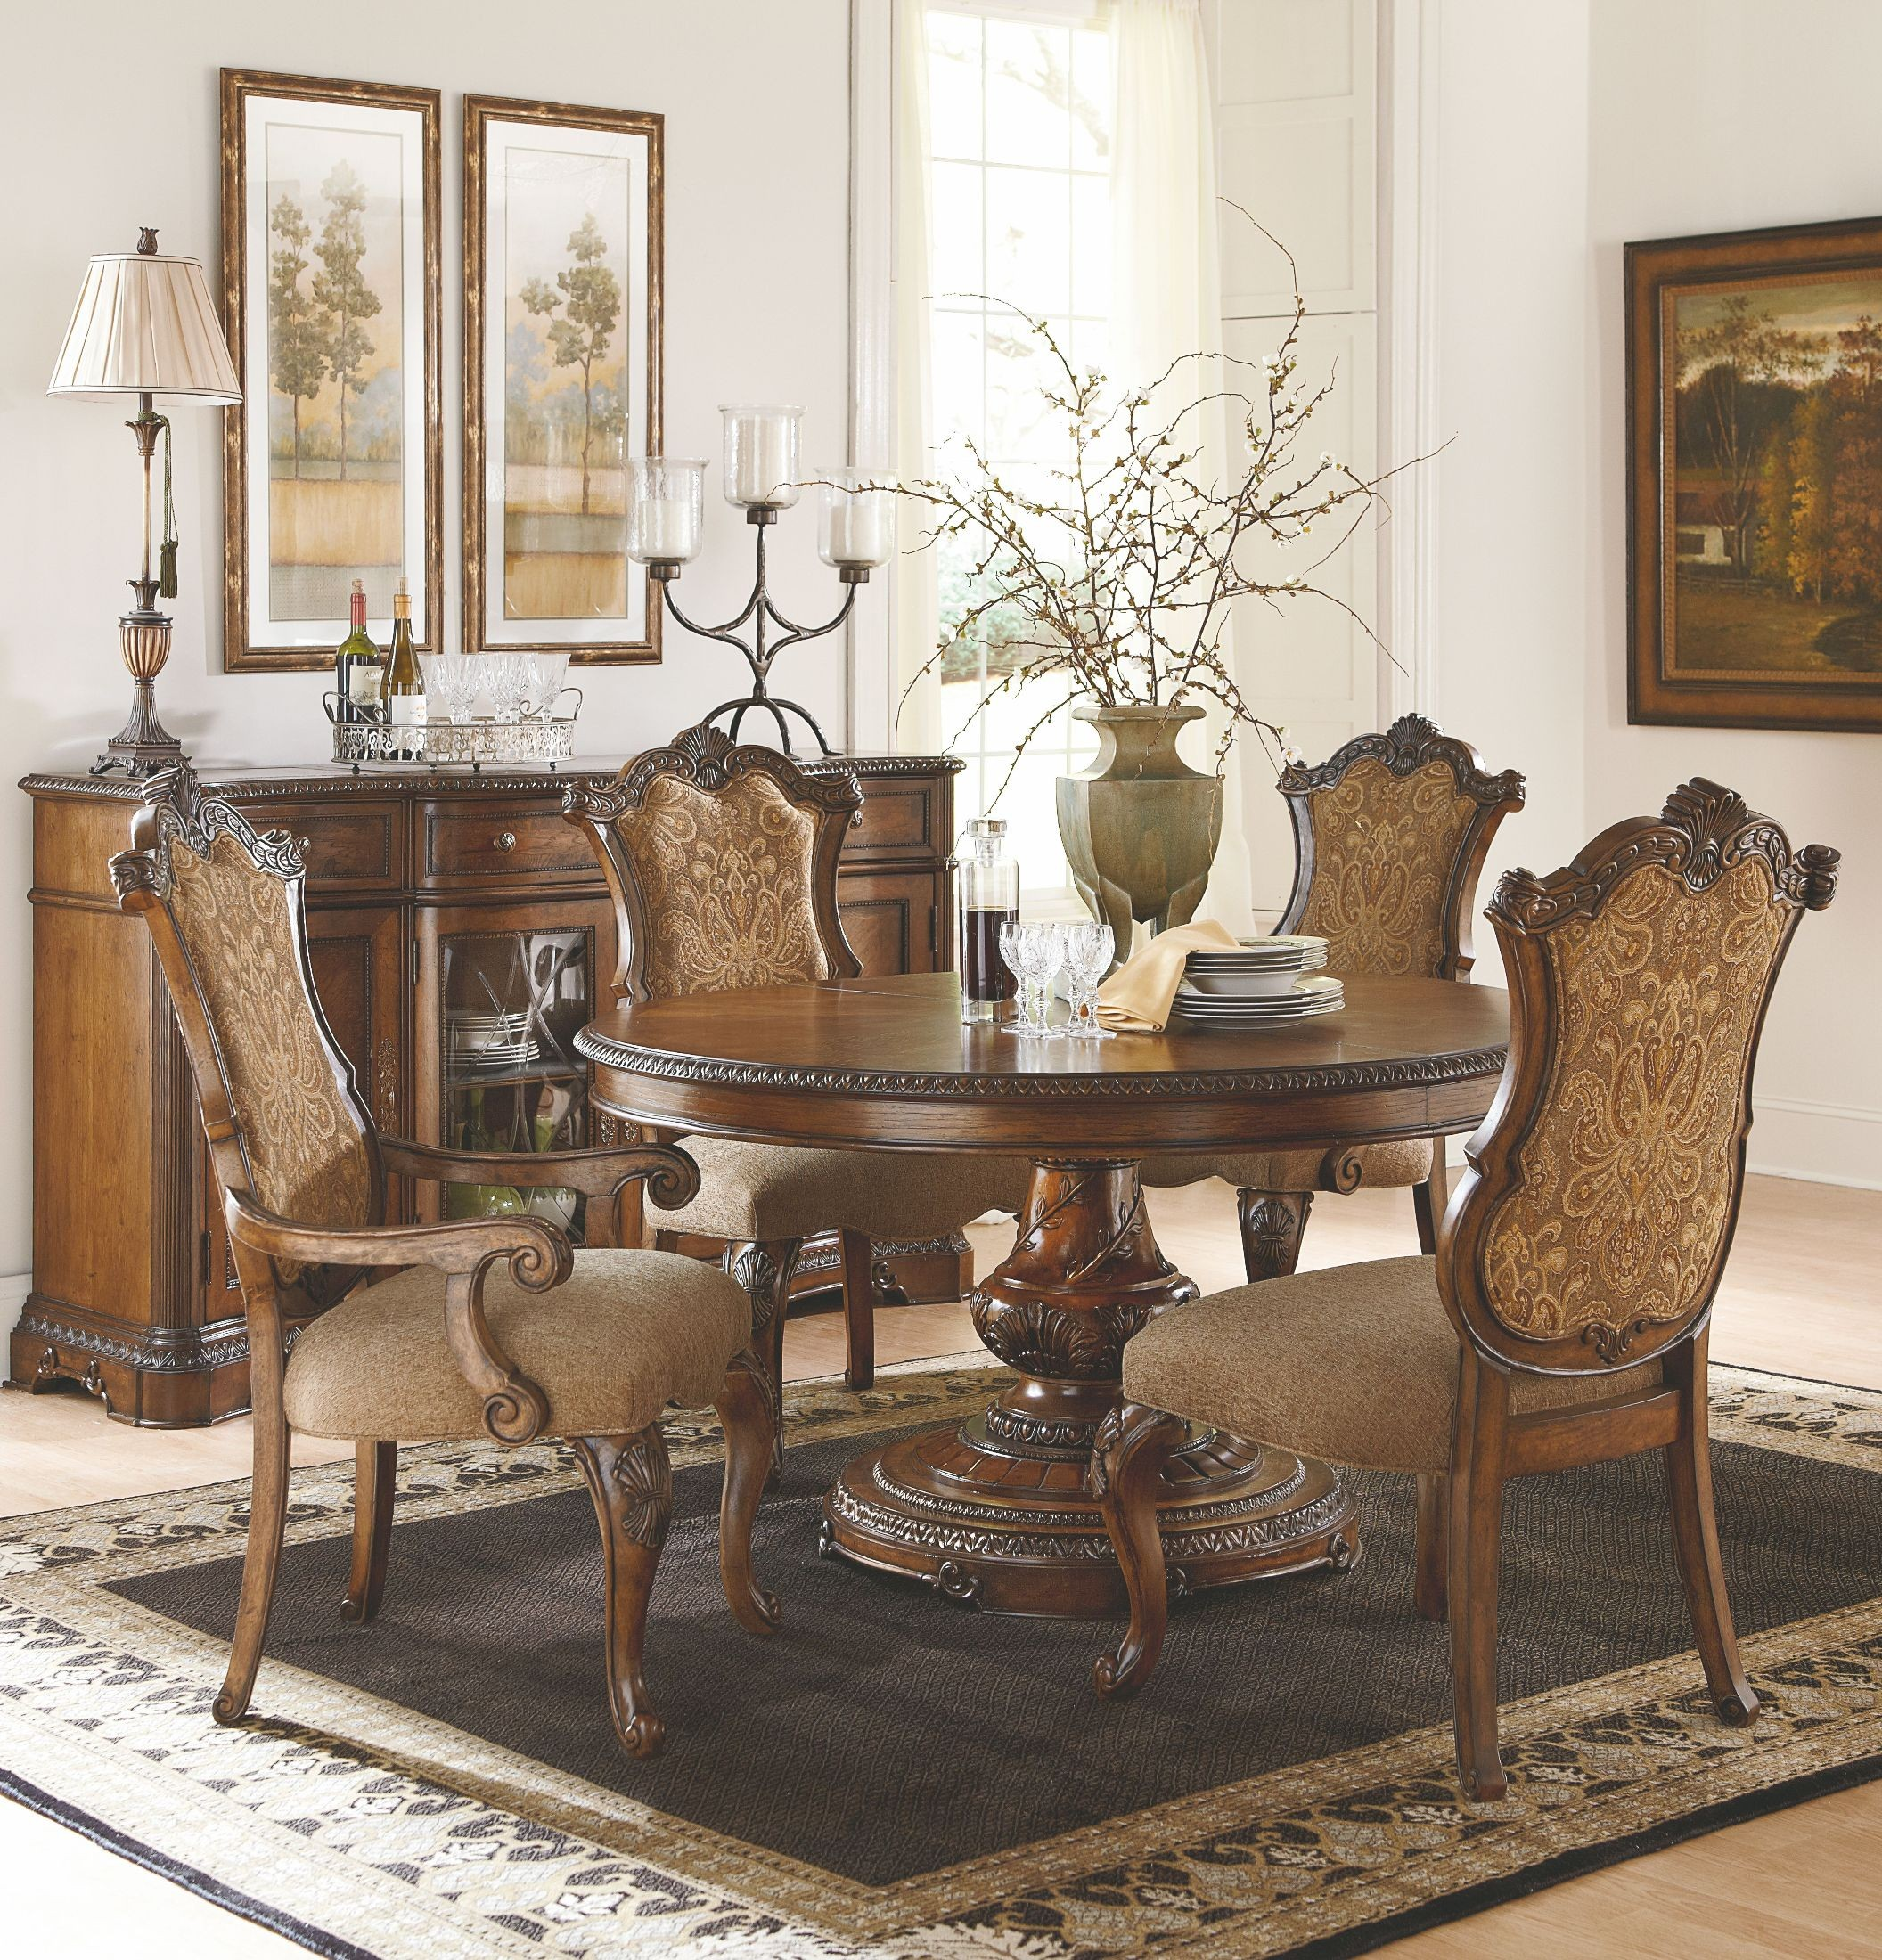 Round Dining Room Sets: Pemberleigh Extendable Round To Oval Dining Room Set From